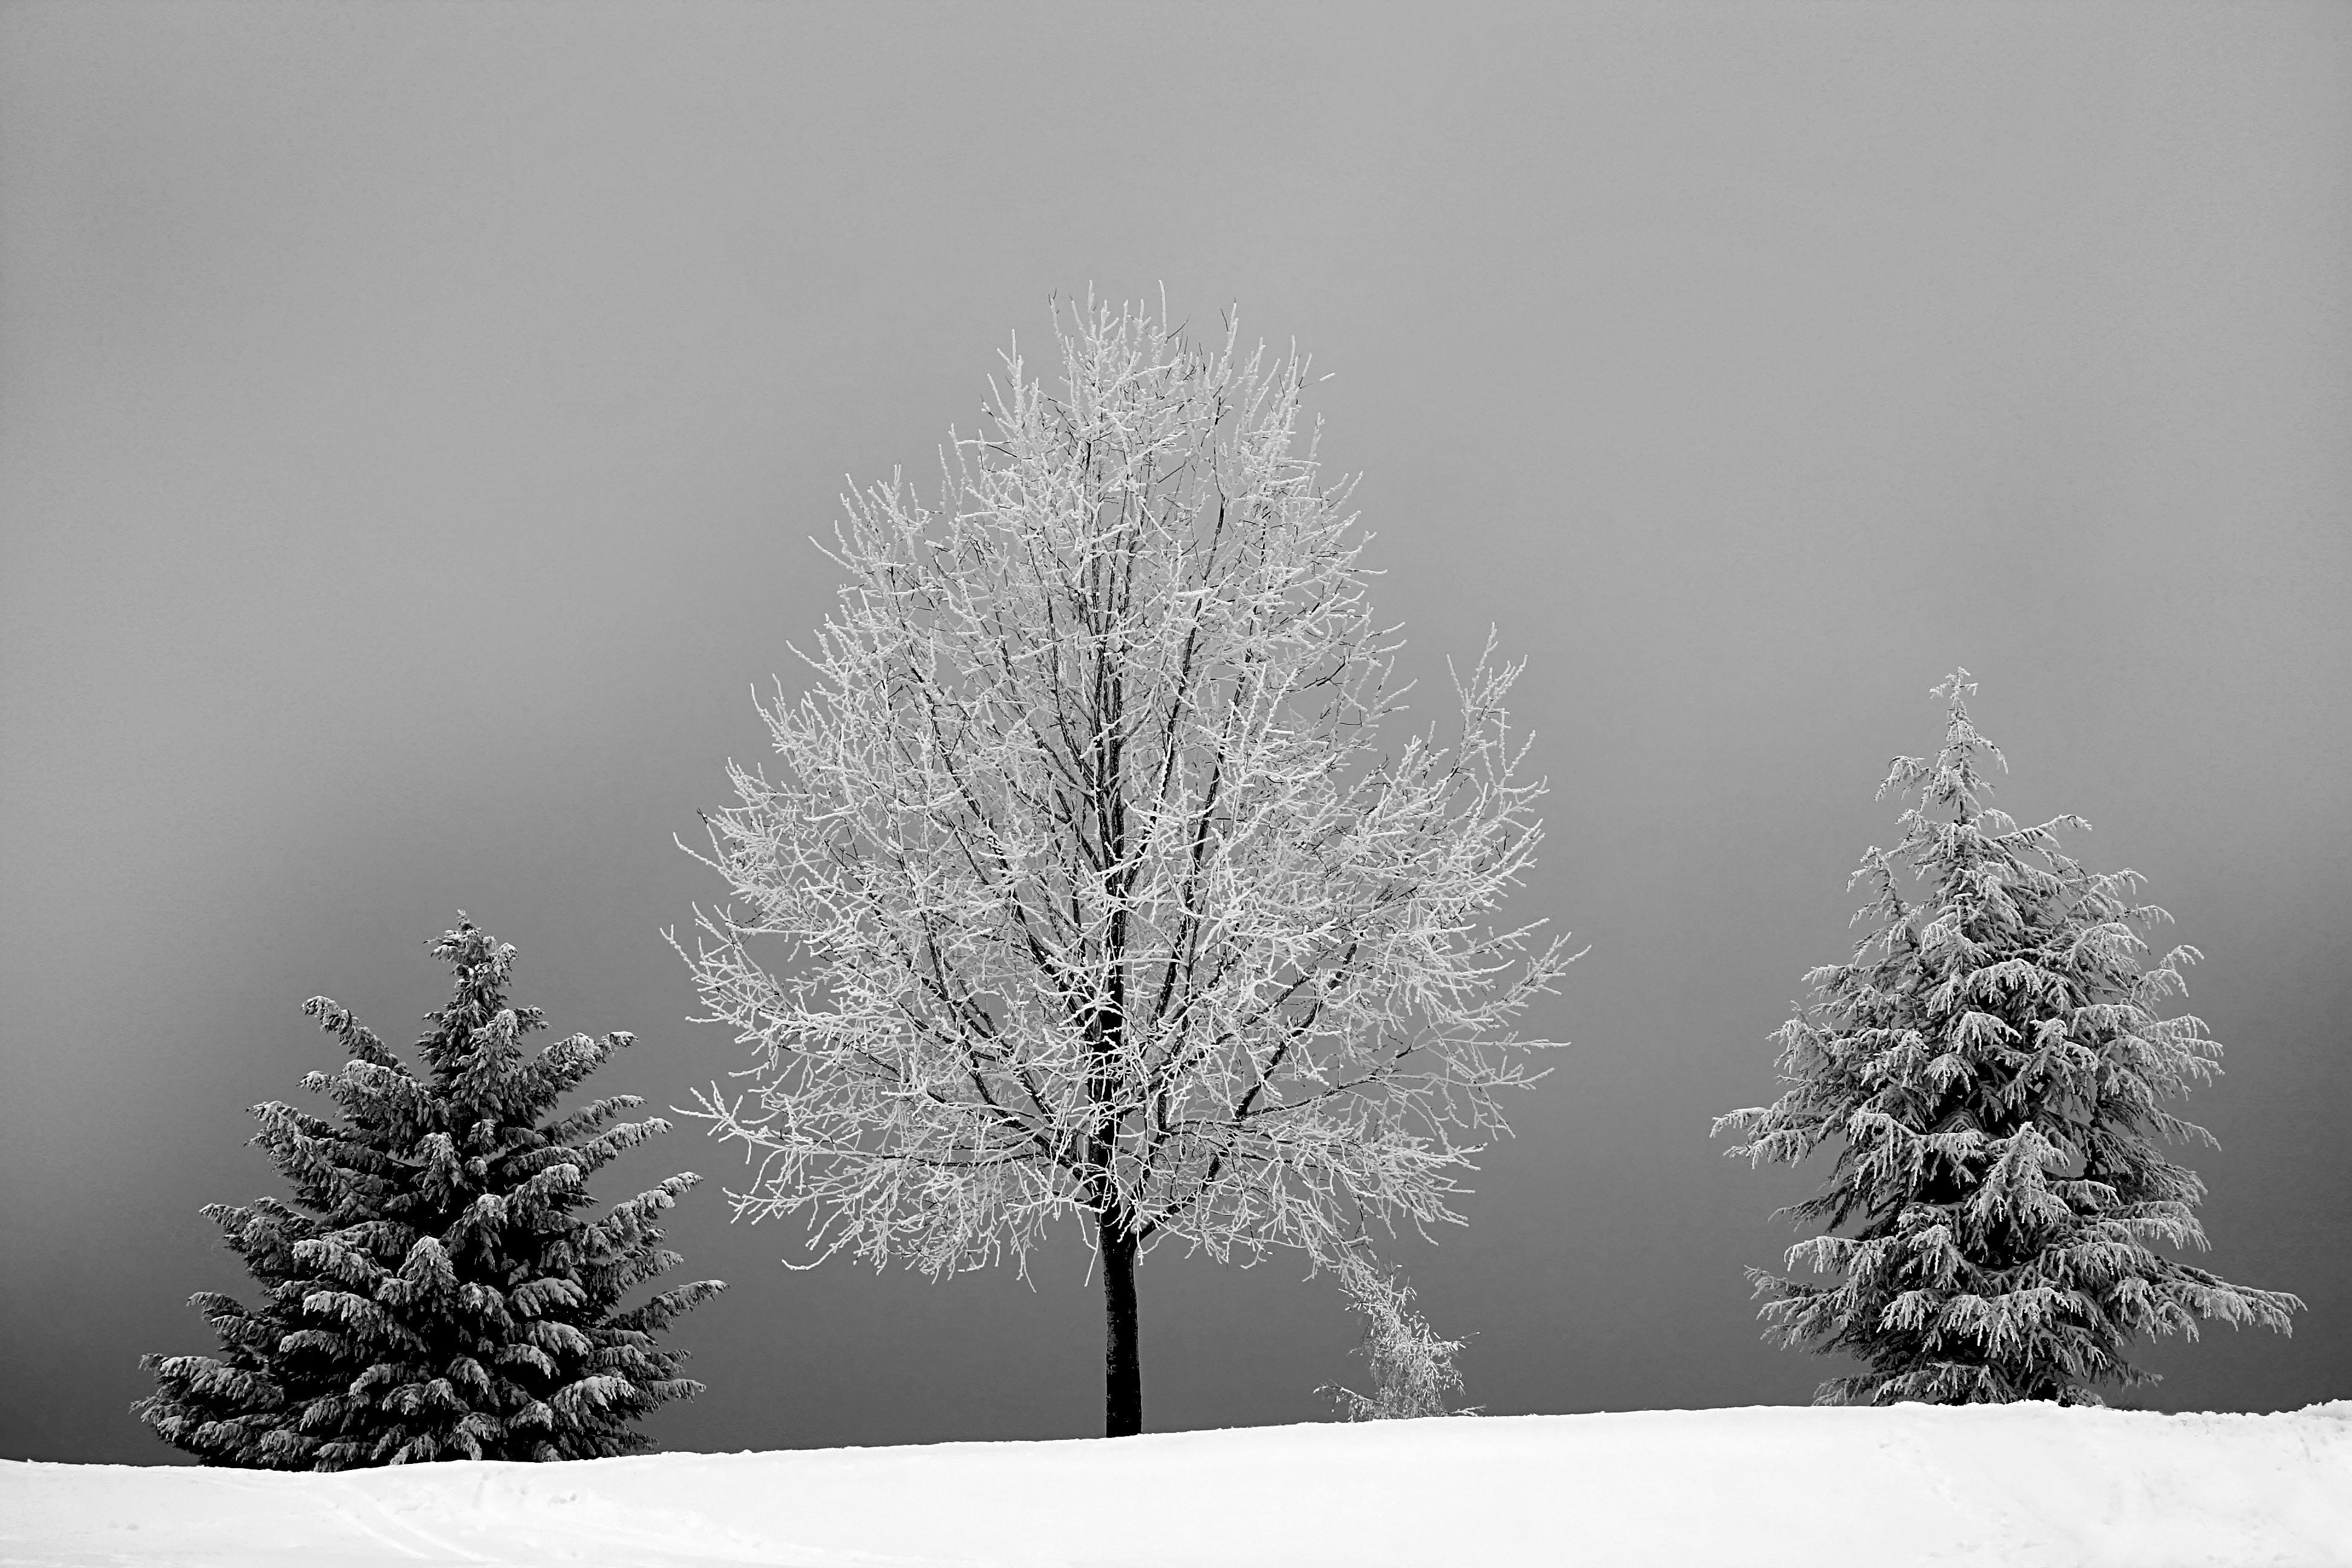 Grayscale Photo of Bareless Tree Between Tree With Snow